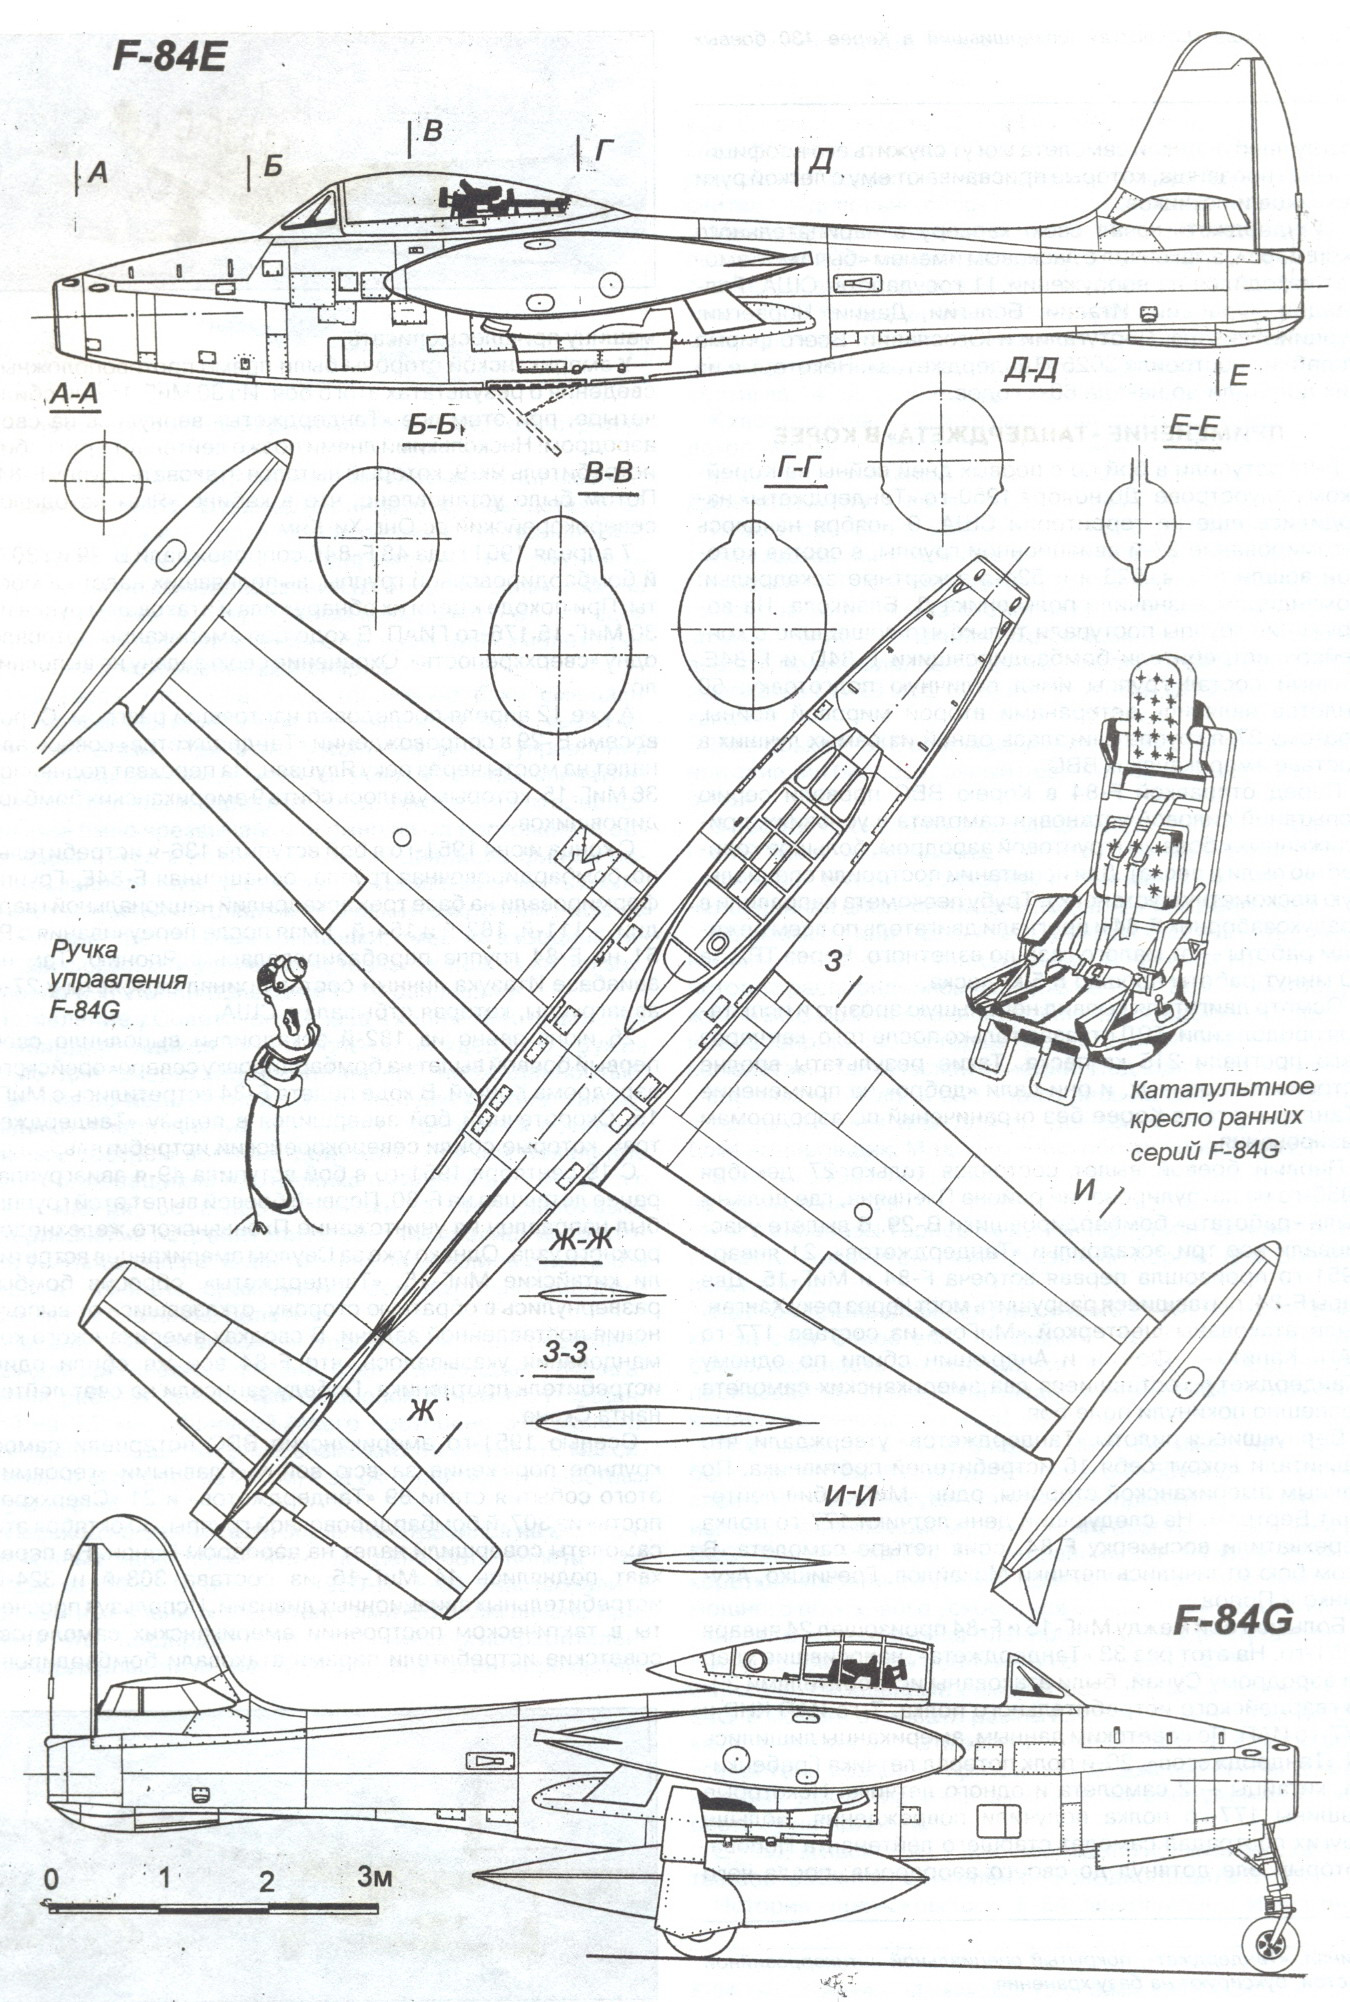 Attachment in addition 0 4569 7 126 2361 14674 32561  00 moreover Arcusaflex besides Flying Plane Coloring Page fly Cartoon Plane Coloring Page Plane Coloring Page together with Airplane Wing Parts Diagram. on c 130